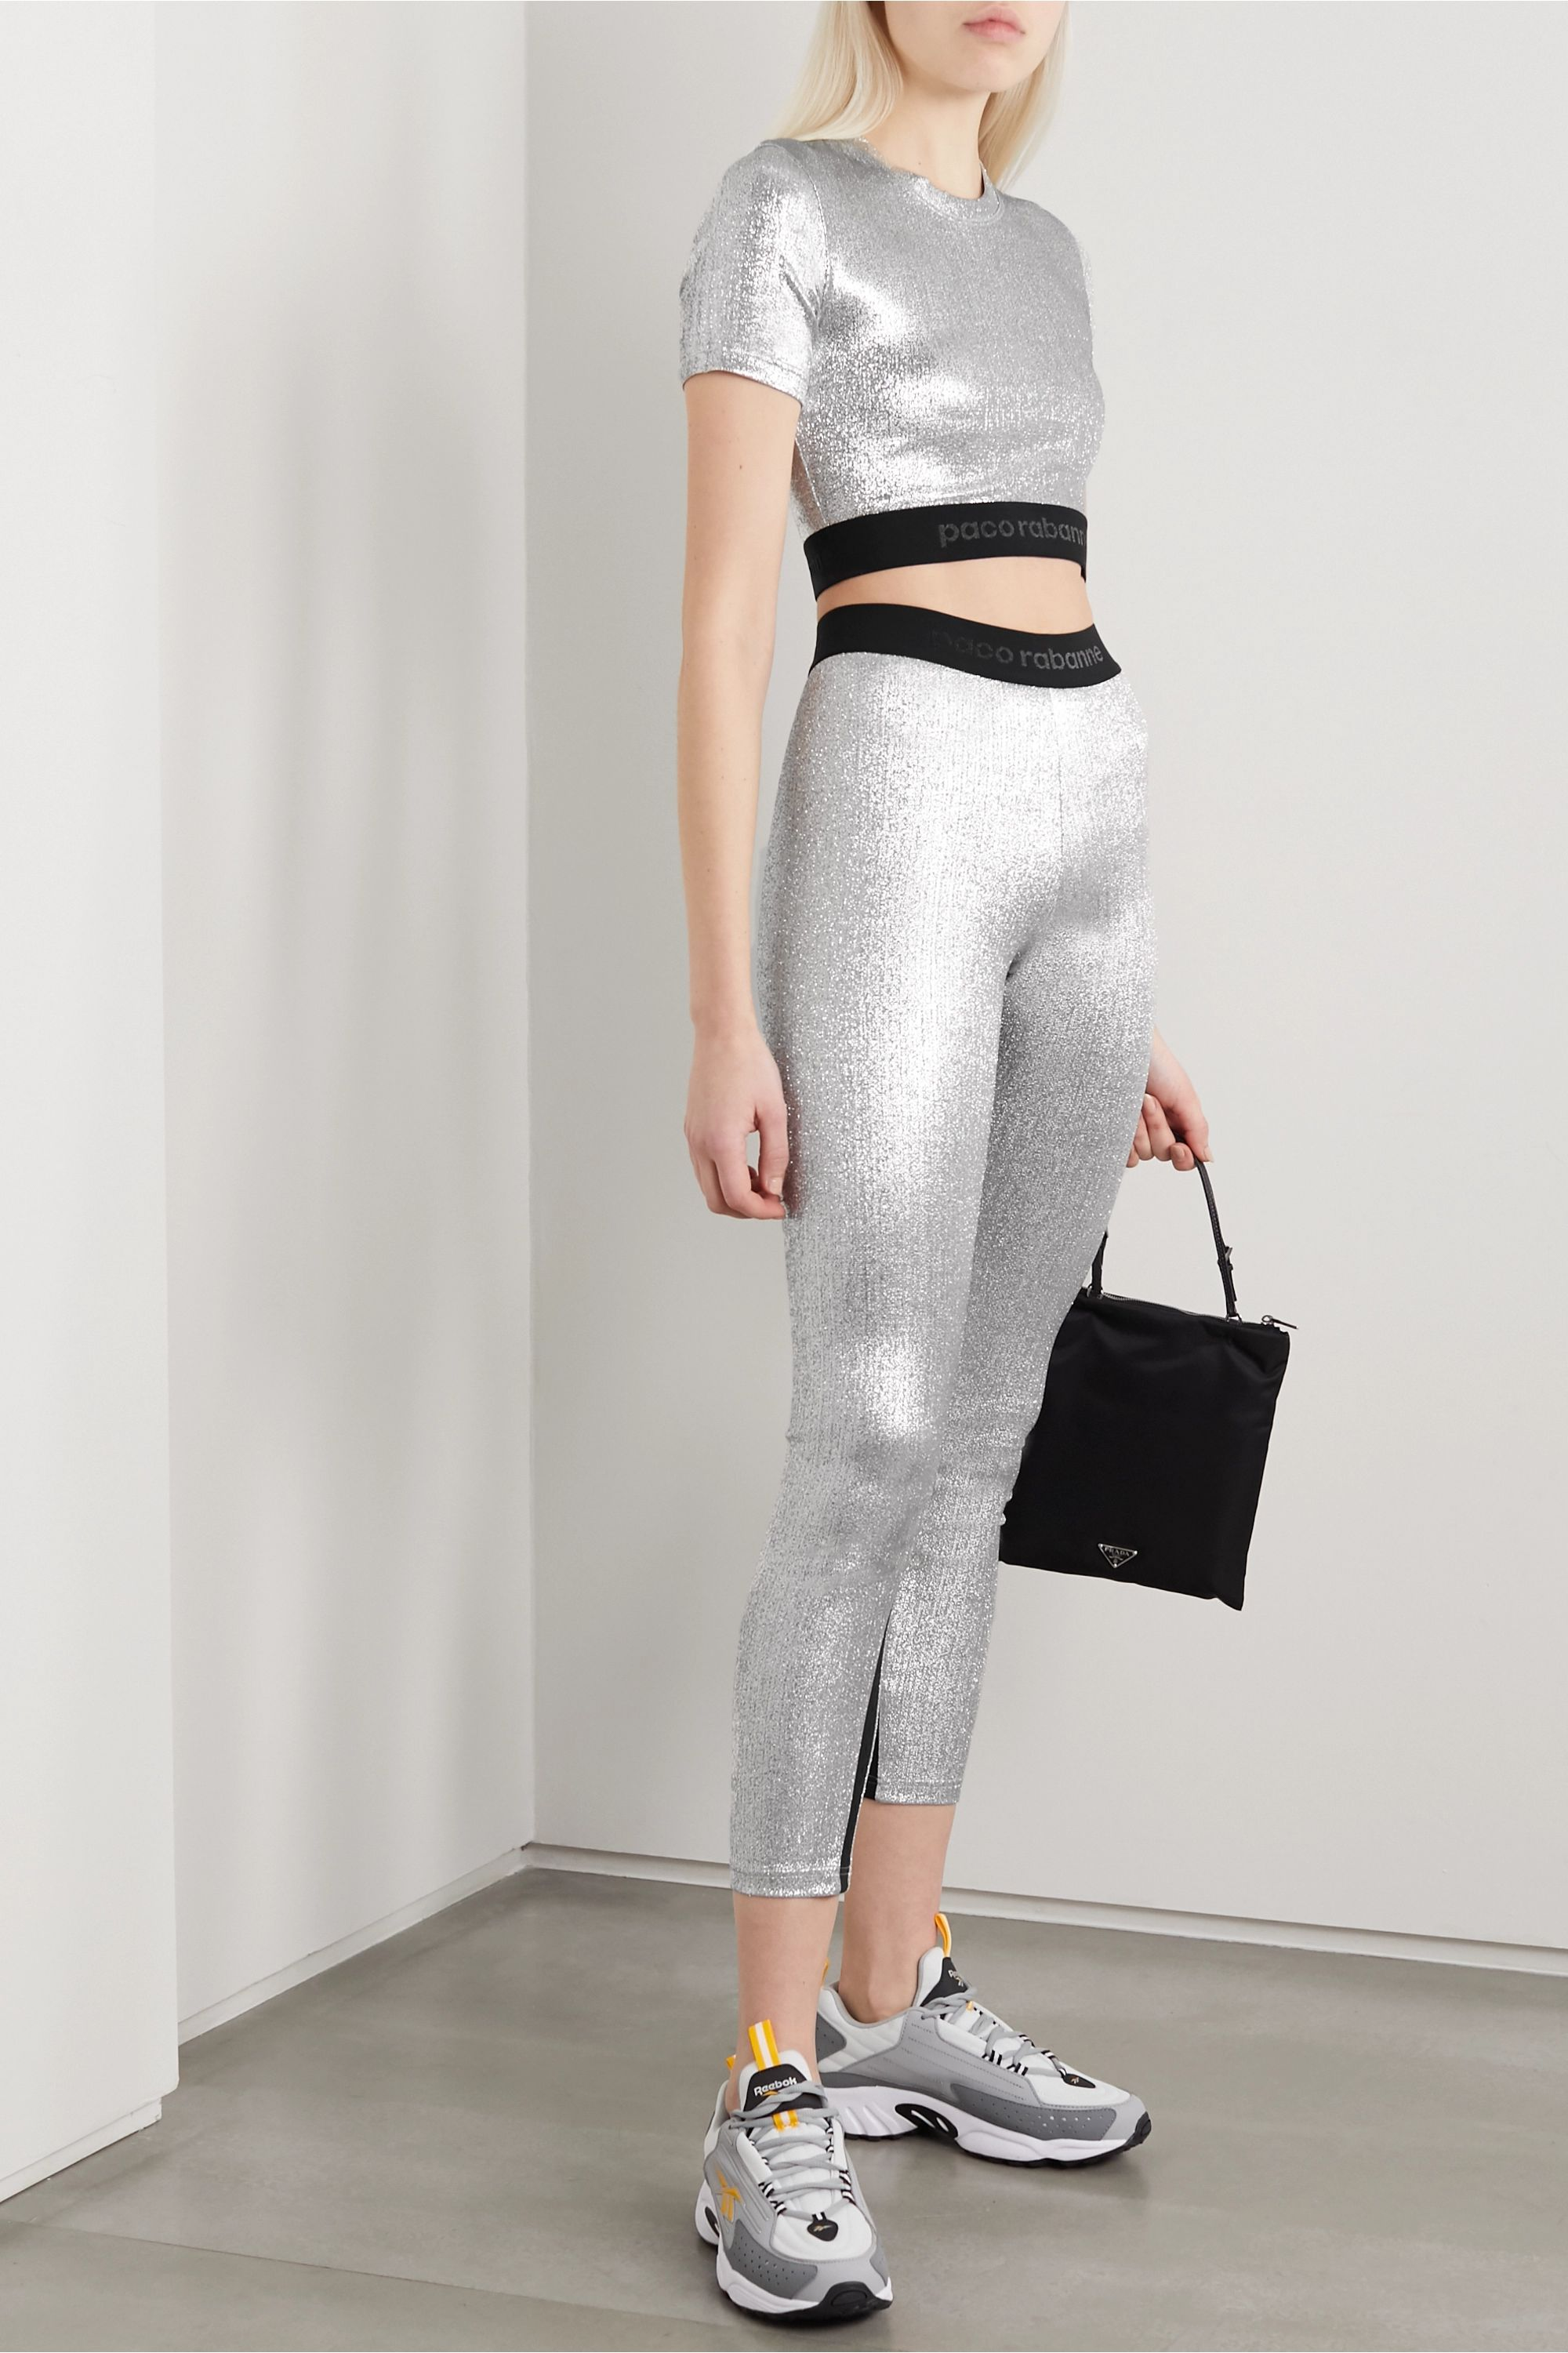 Paco Rabanne Cropped two-tone metallic stretch top